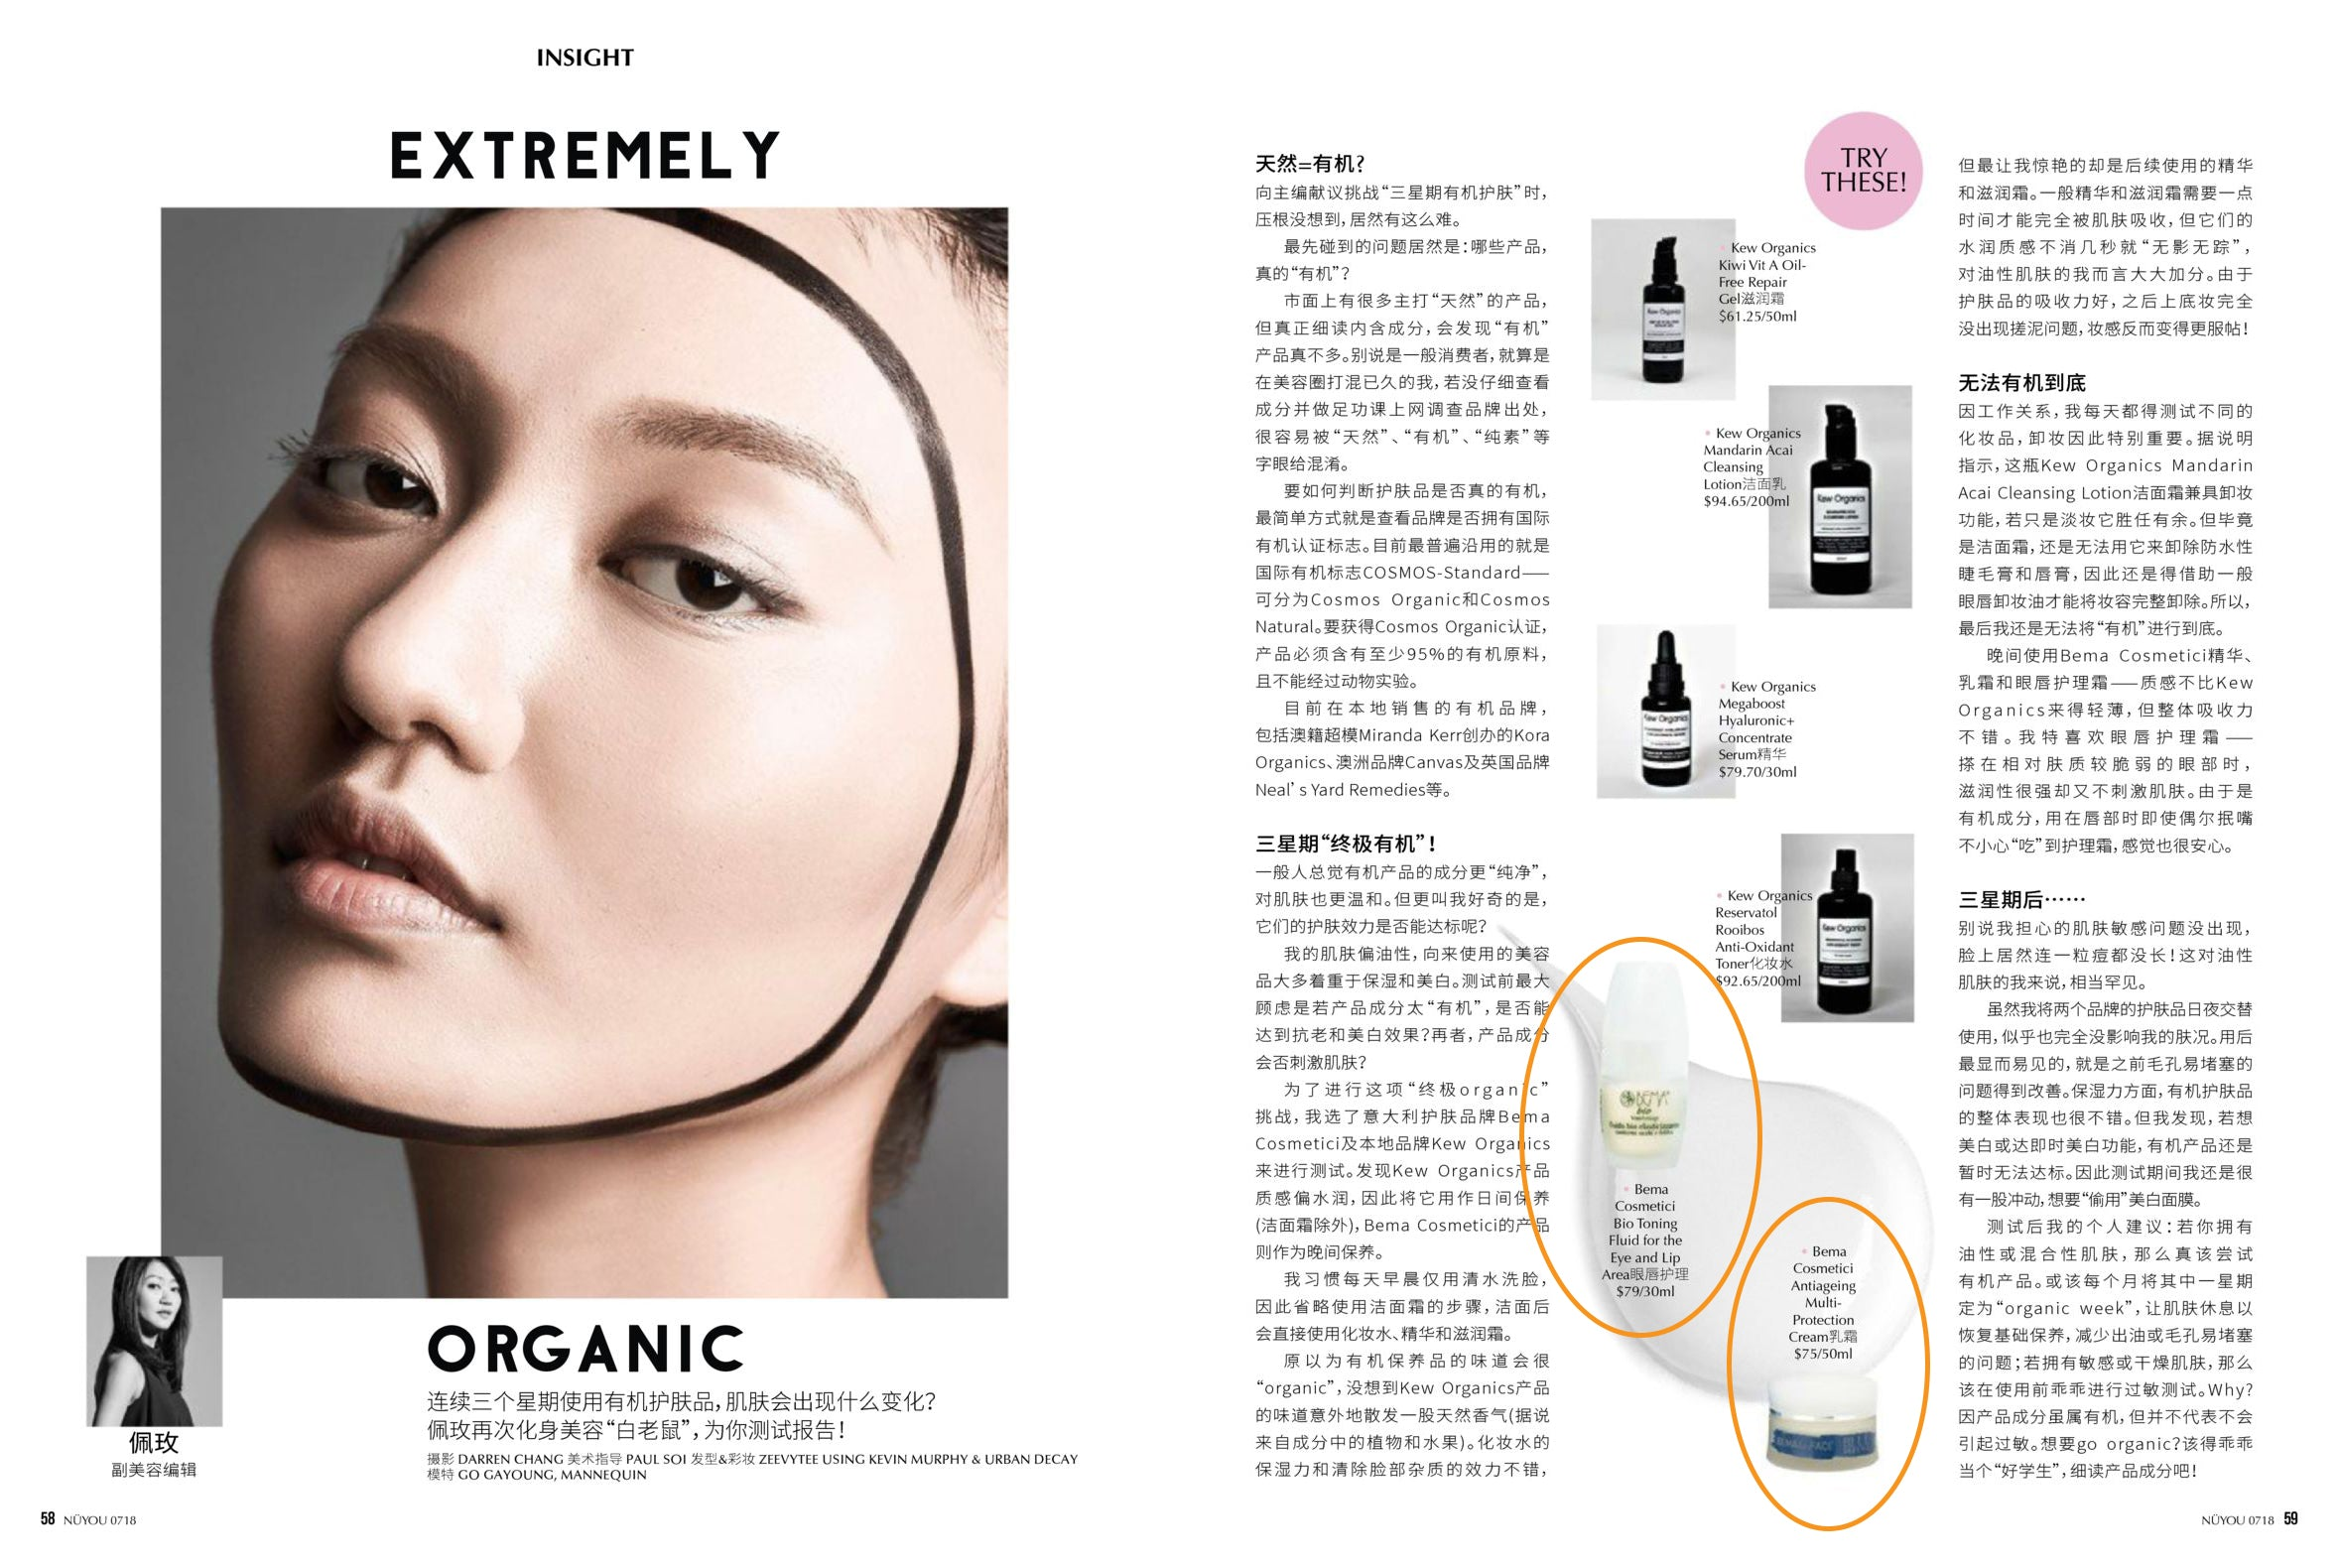 2018 NuYou Extremely Organic Insight Feature Bema Cosmetici Skincare